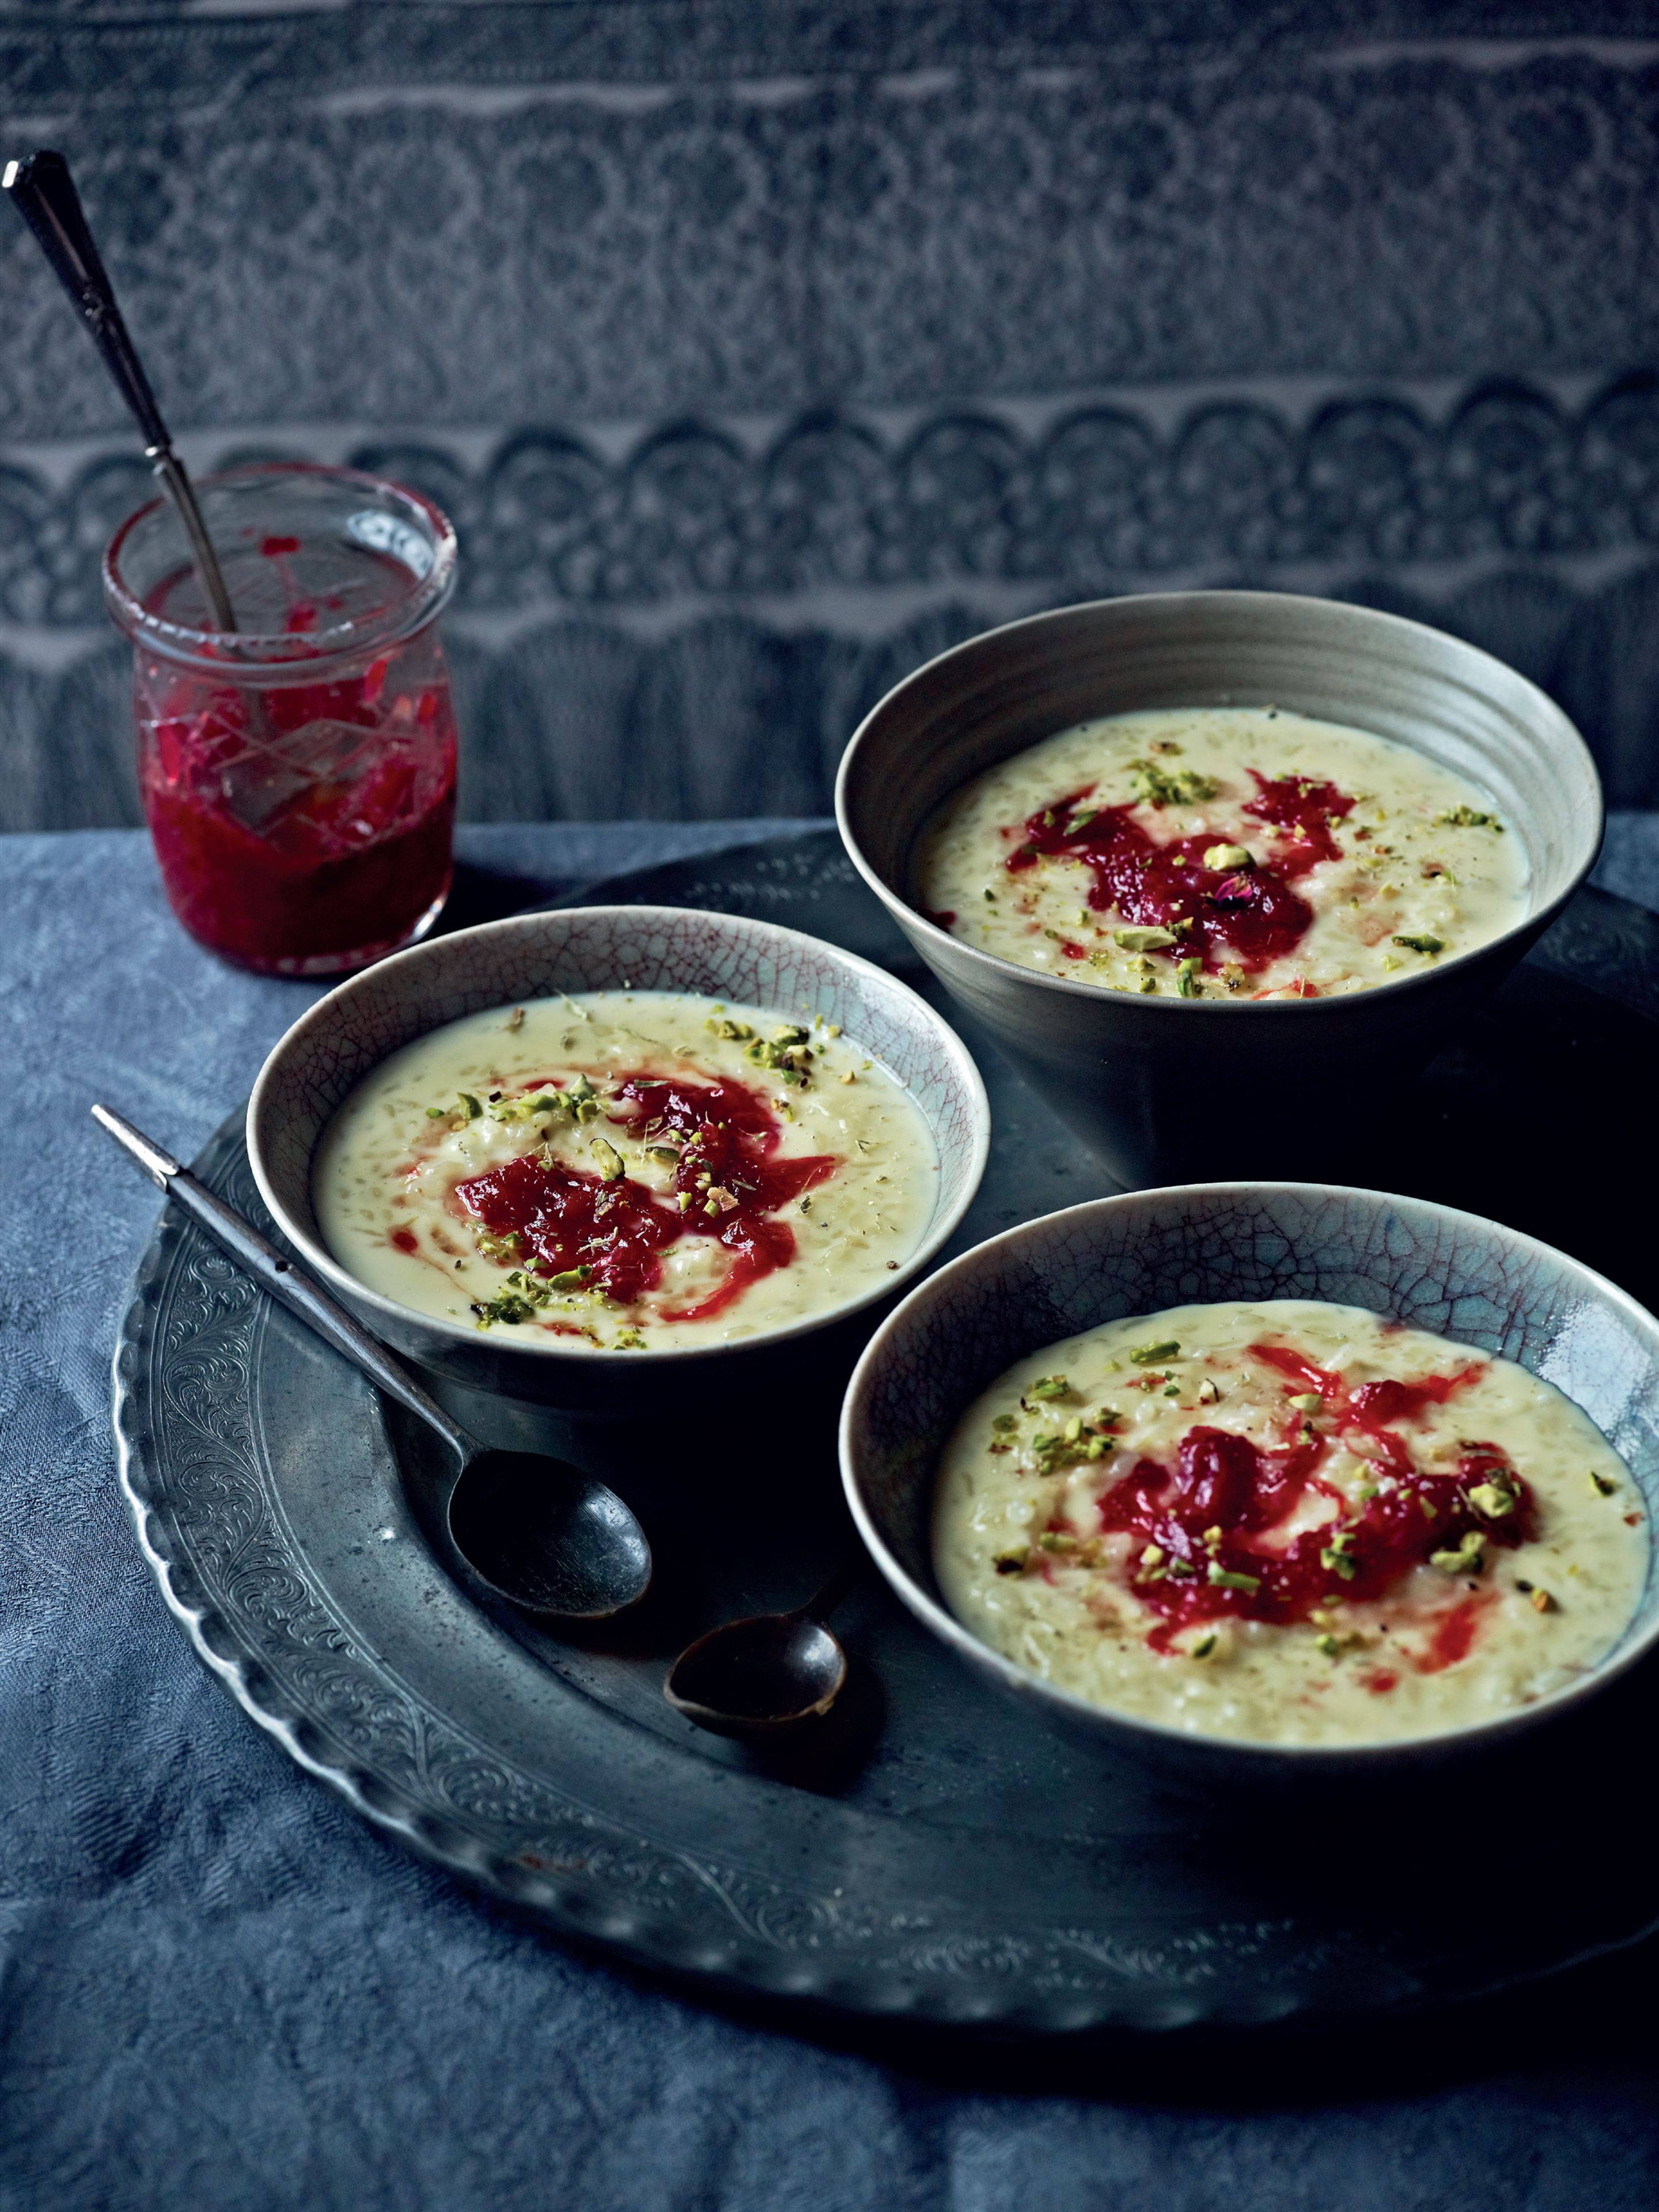 Rice pudding with rose petal jam